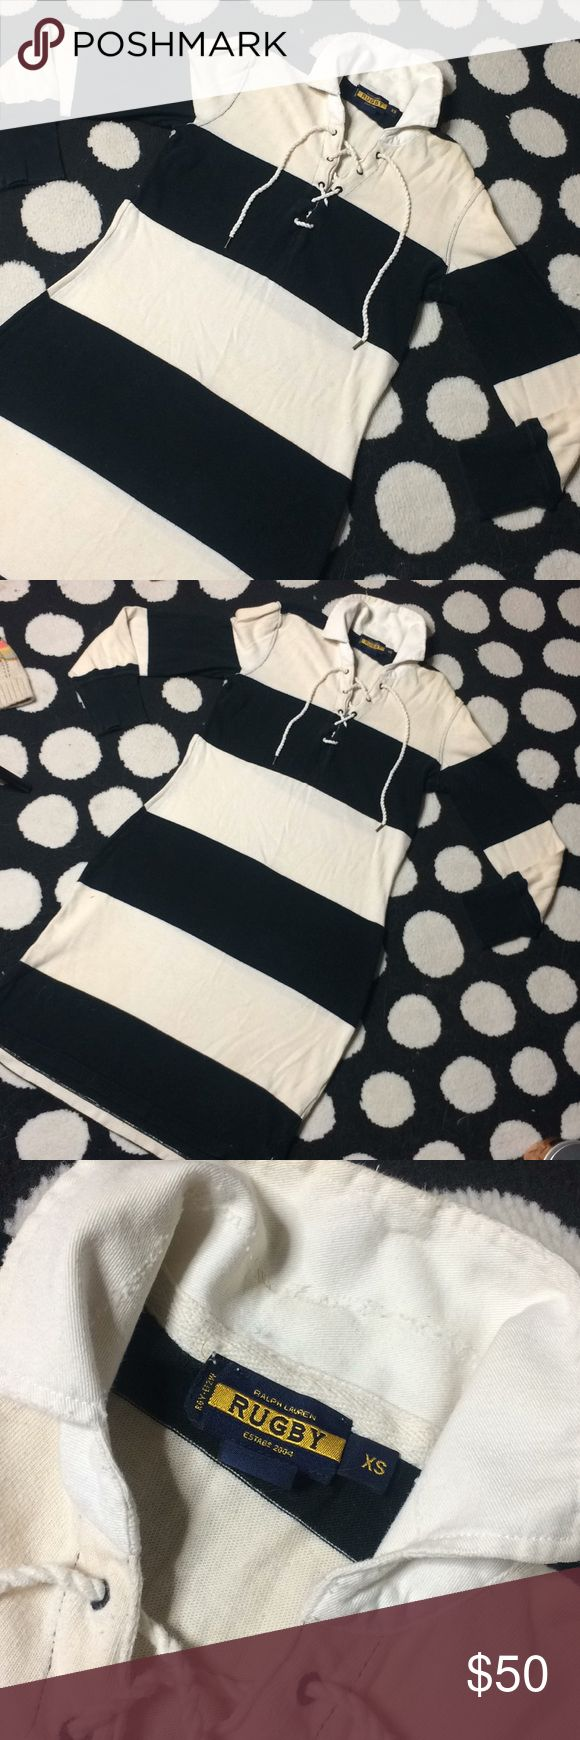 Rugby Ralph Lauren Classic Rugby Style Mini Dress Look stylish and stay comfy with this adorable, edgy & fun Rugby by Ralph Lauren Classic Black & White striped Rugby Mini Dress.  Edgy, distressed details, embroidered Skull Rugby logo under collar displays when collar is popped, Lace up detail.  Can double as a tunic as well!  The perfect year round piece! Pair with your favorite riding boots & blazer for a day friendly, classic office look or pair with your favorite accessories for a…